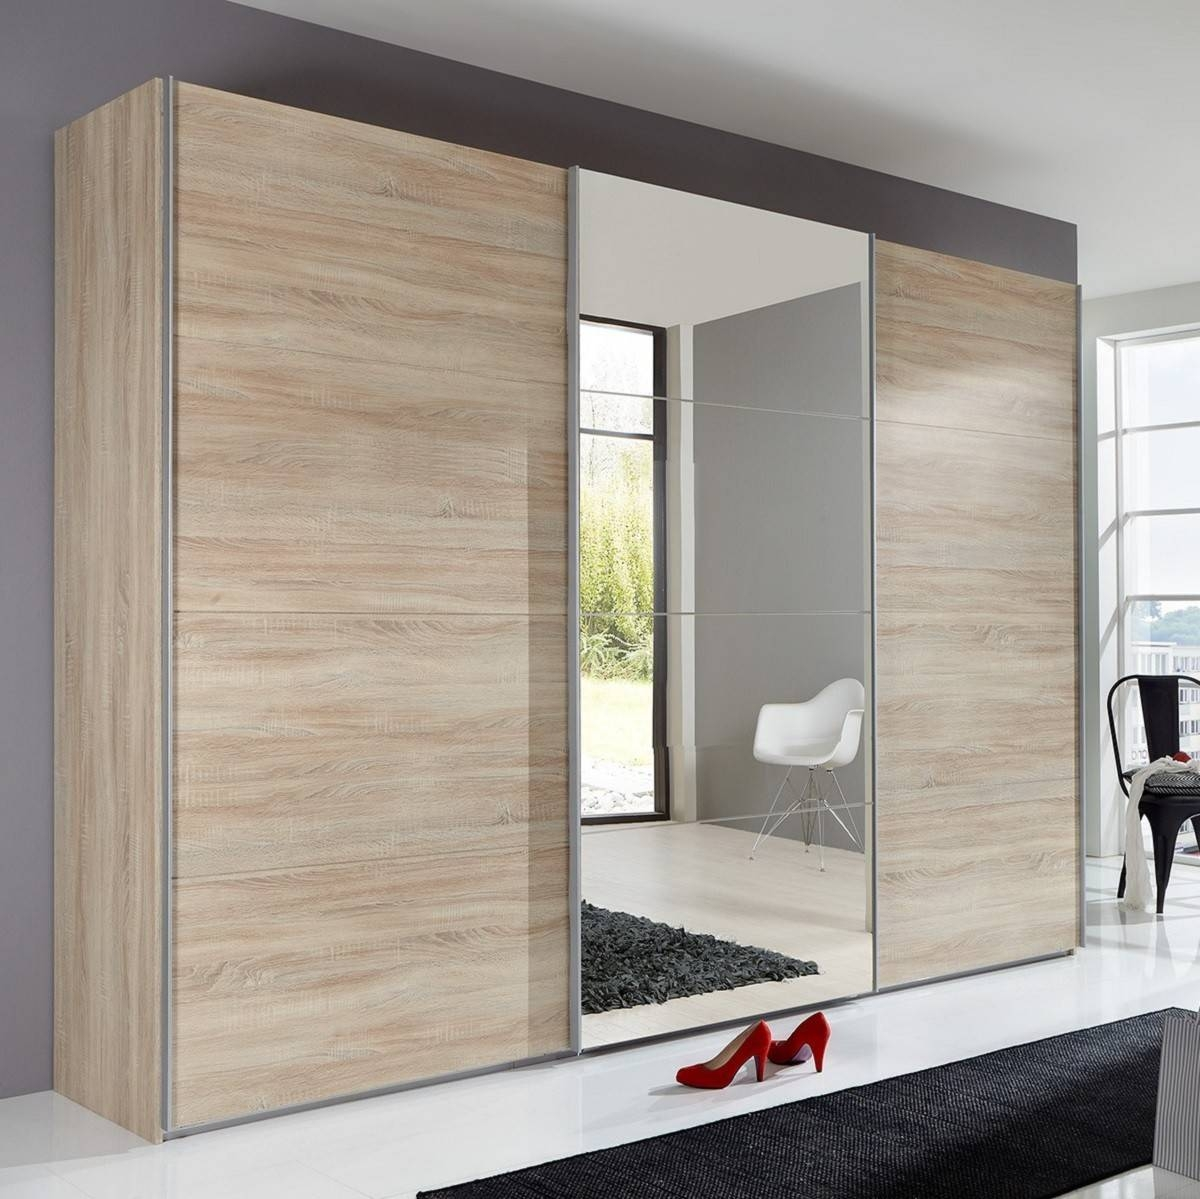 Slumberhaus 'ernie' German Made Modern 270Cm Oak & Mirror 3 Door for 3 Door Mirrored Wardrobes (Image 13 of 15)